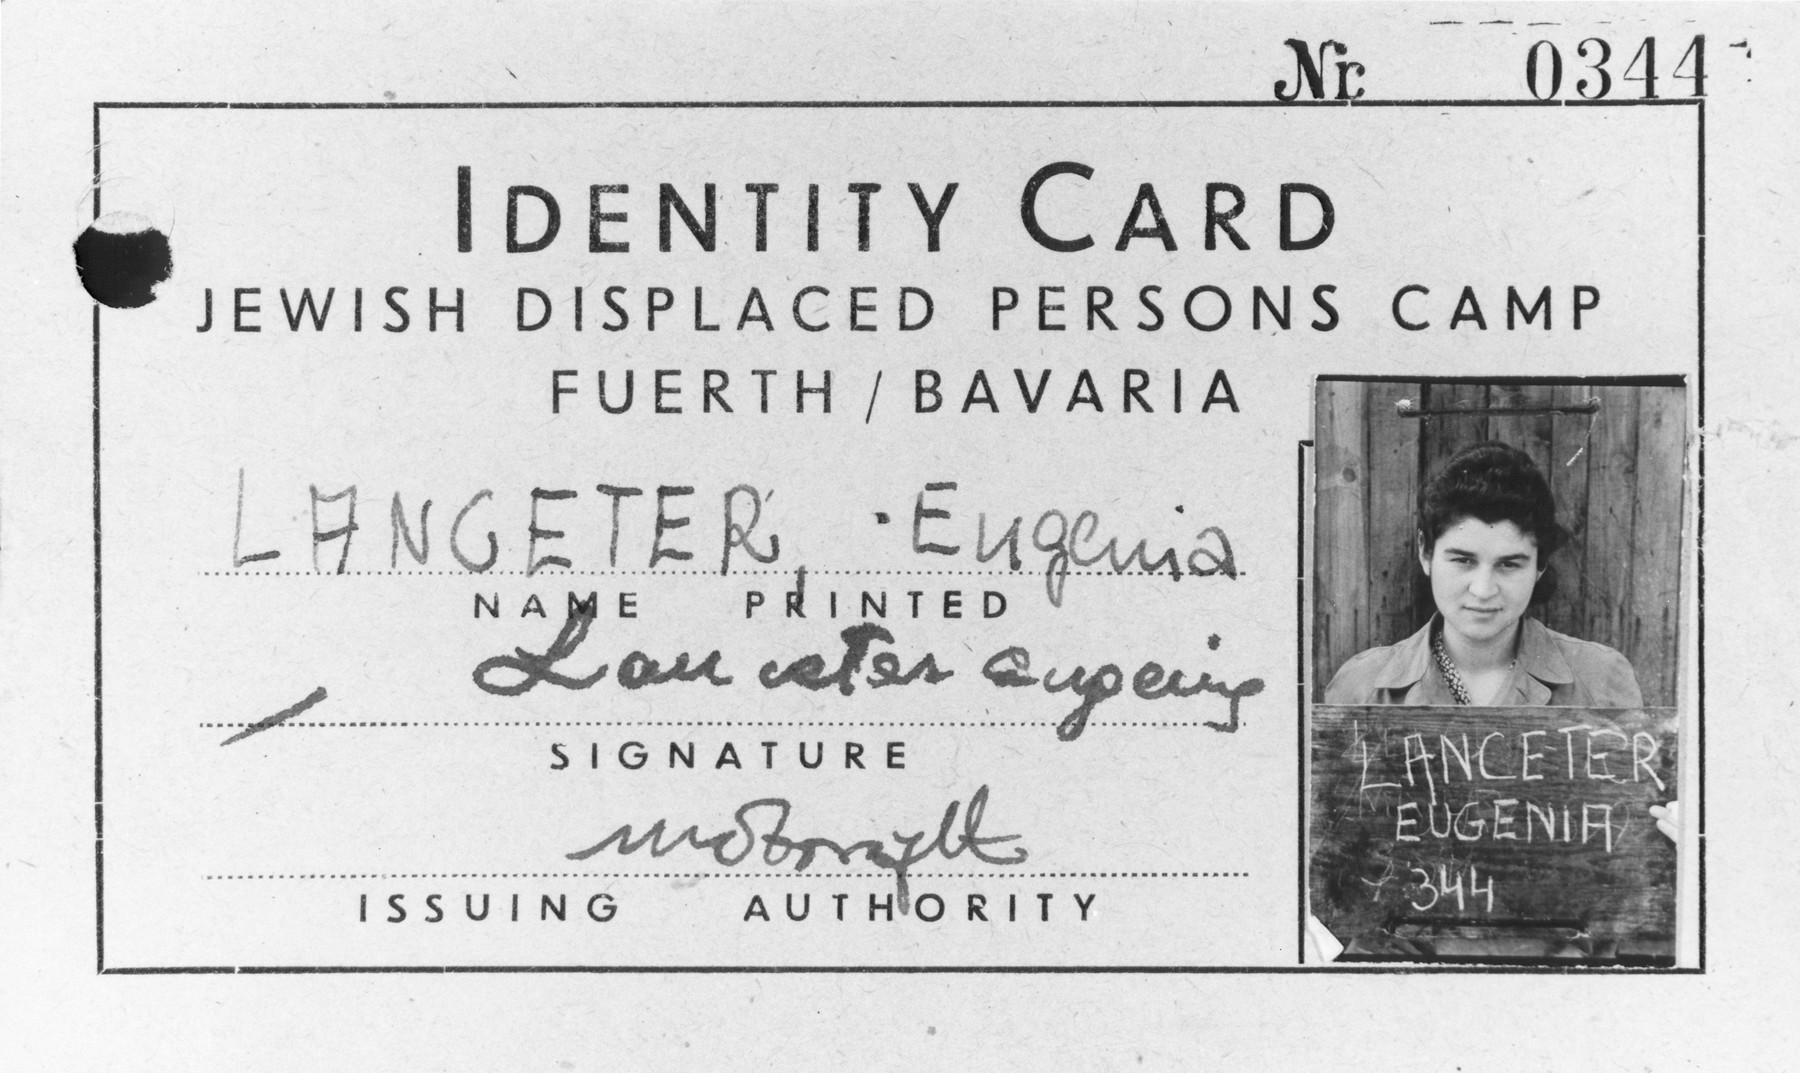 Identity card issued to Eugenia Lanceter, a resident of the Jewish displaced persons camp in Fuerth, Bavaria.